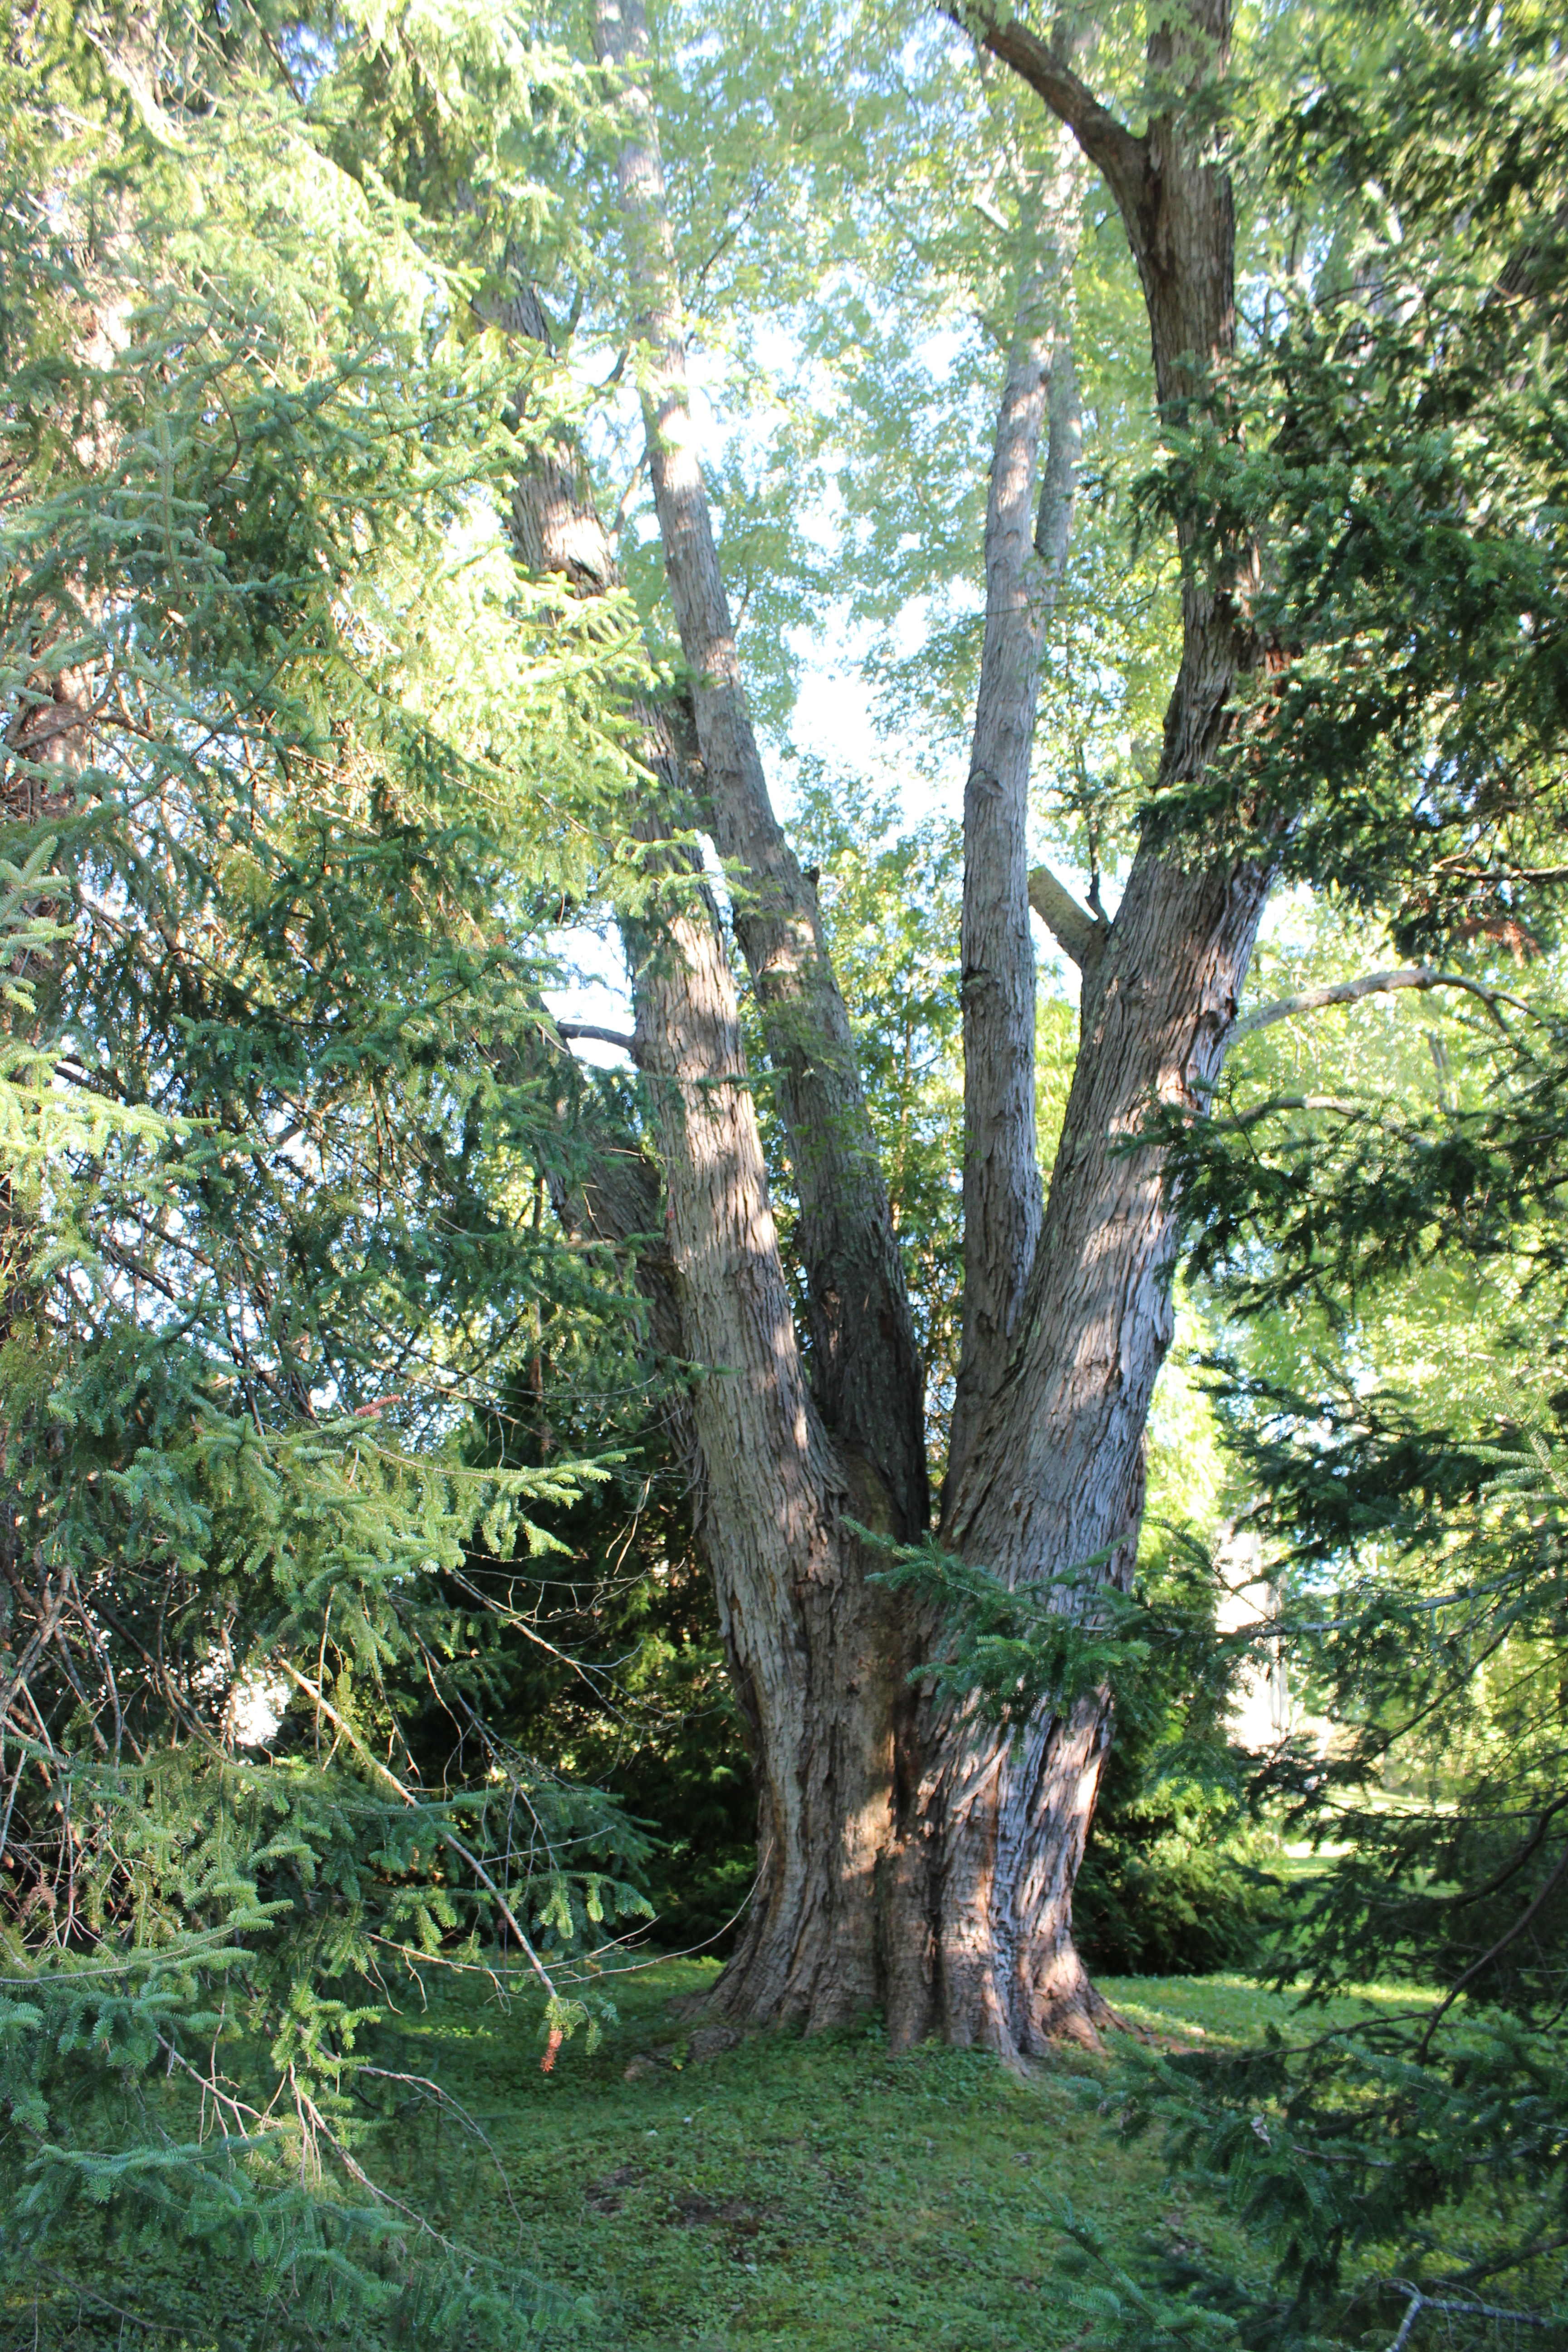 Accurate Tree Removes Scale Topping Silver Maple in NH